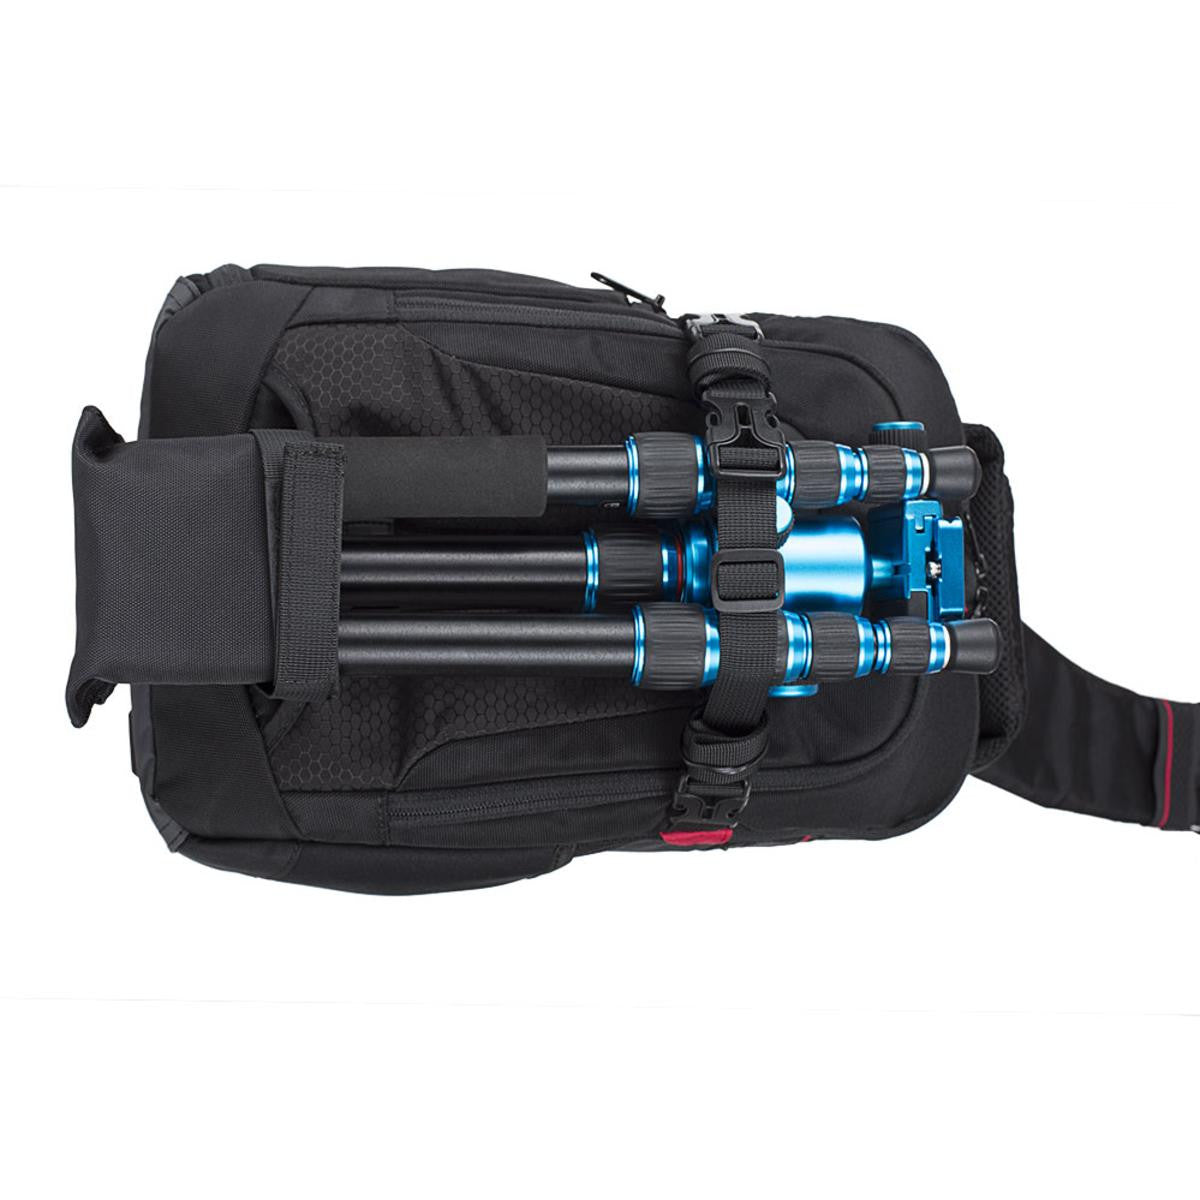 StudioPRO DSLR/Video Travel Camera Sling Backpack